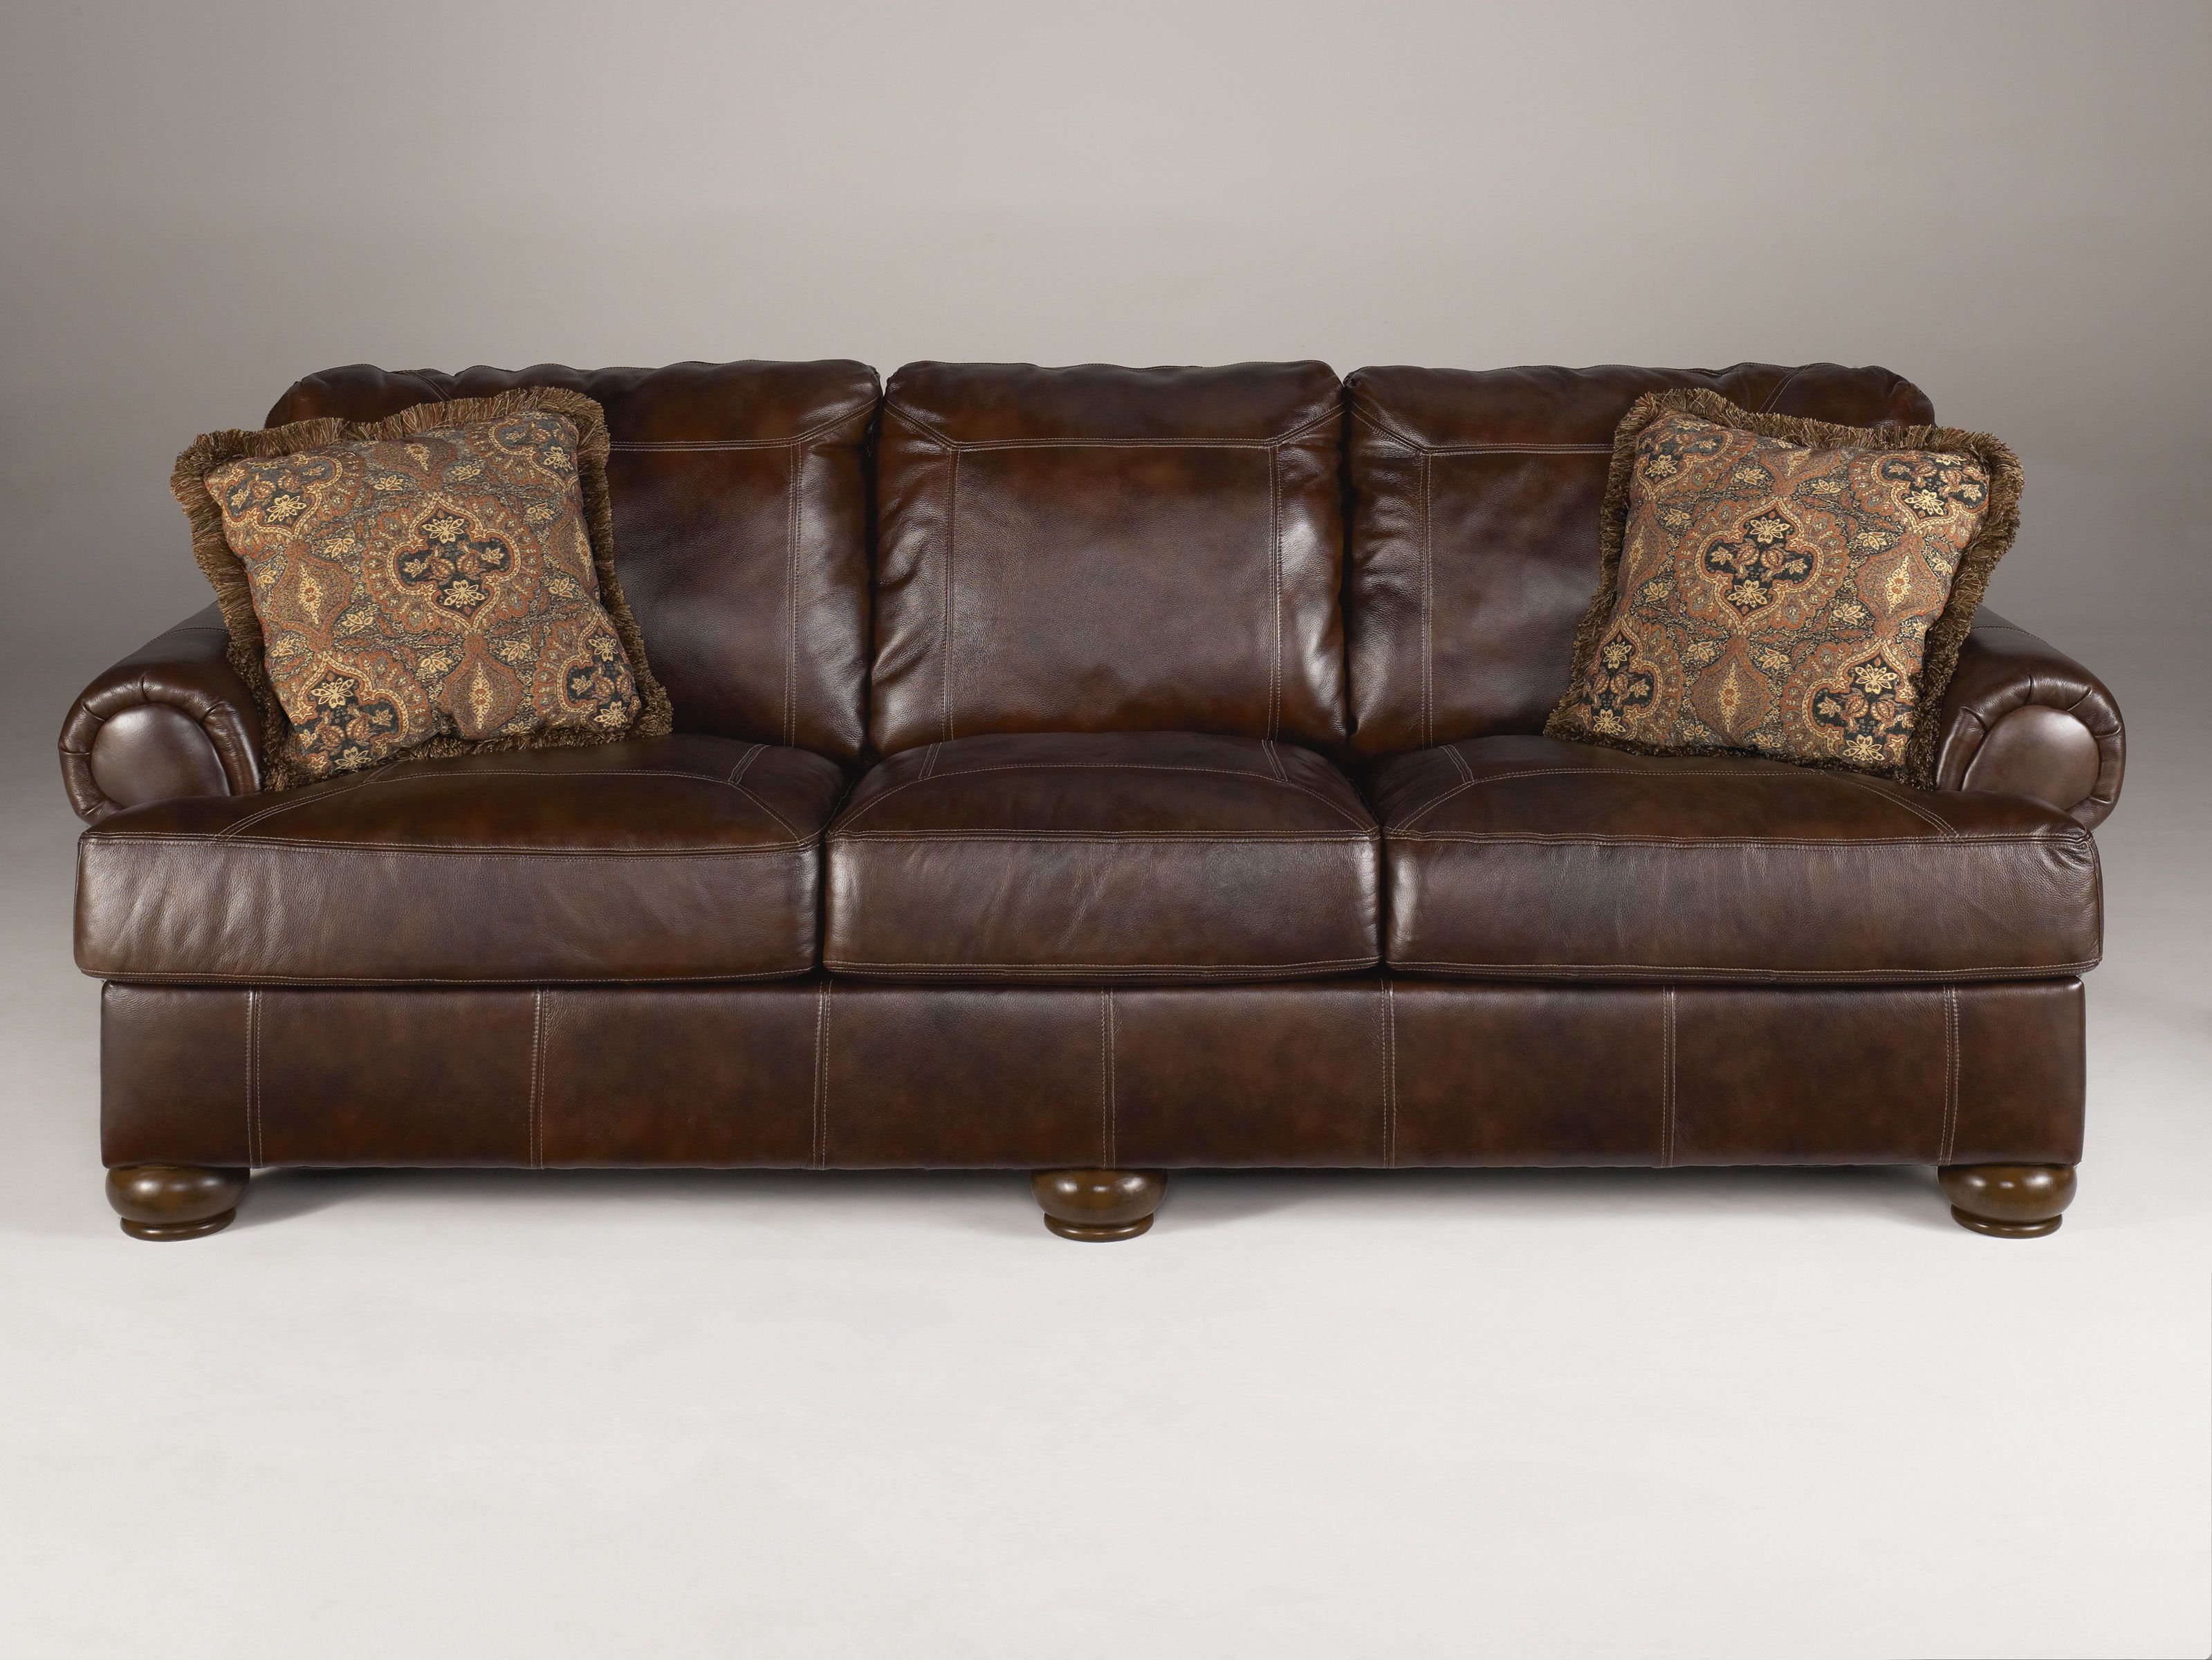 Cool Leather Couch Ashley Furniture , Unique Leather Couch Ashley Furniture  87 For Your Sofa Table